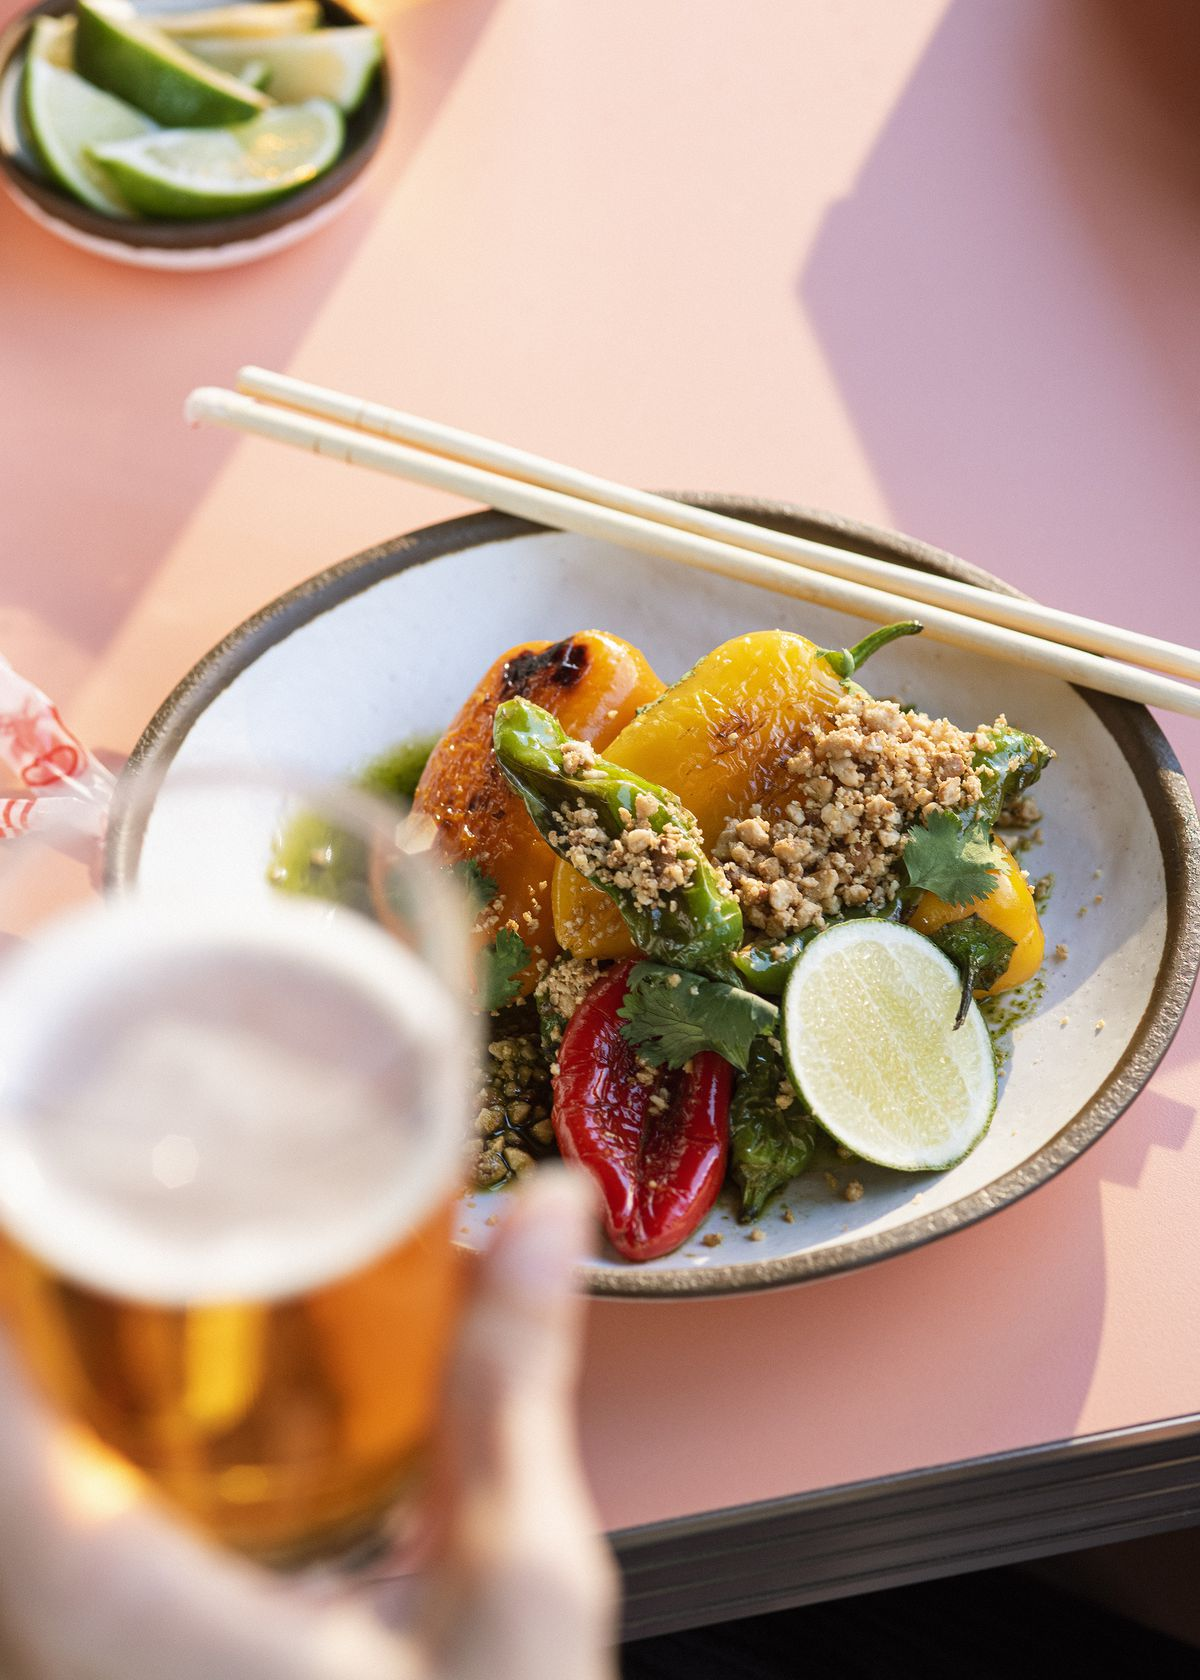 Fried Peppers with cilantro, cashew, citrus salt, and a beer on a pink table